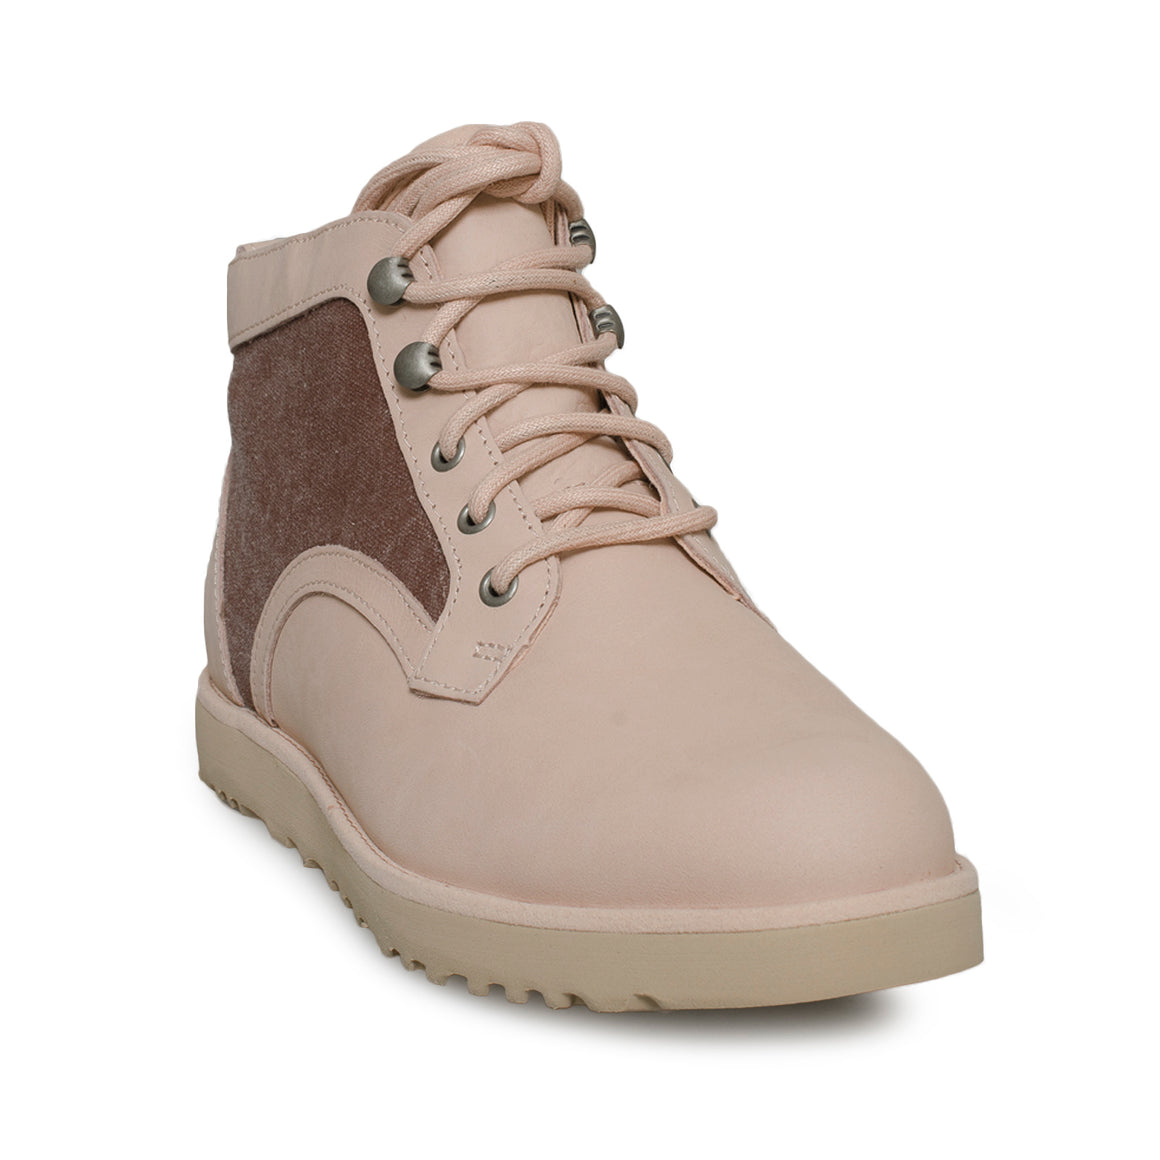 UGG Bethany Canvas Quartz Shoes